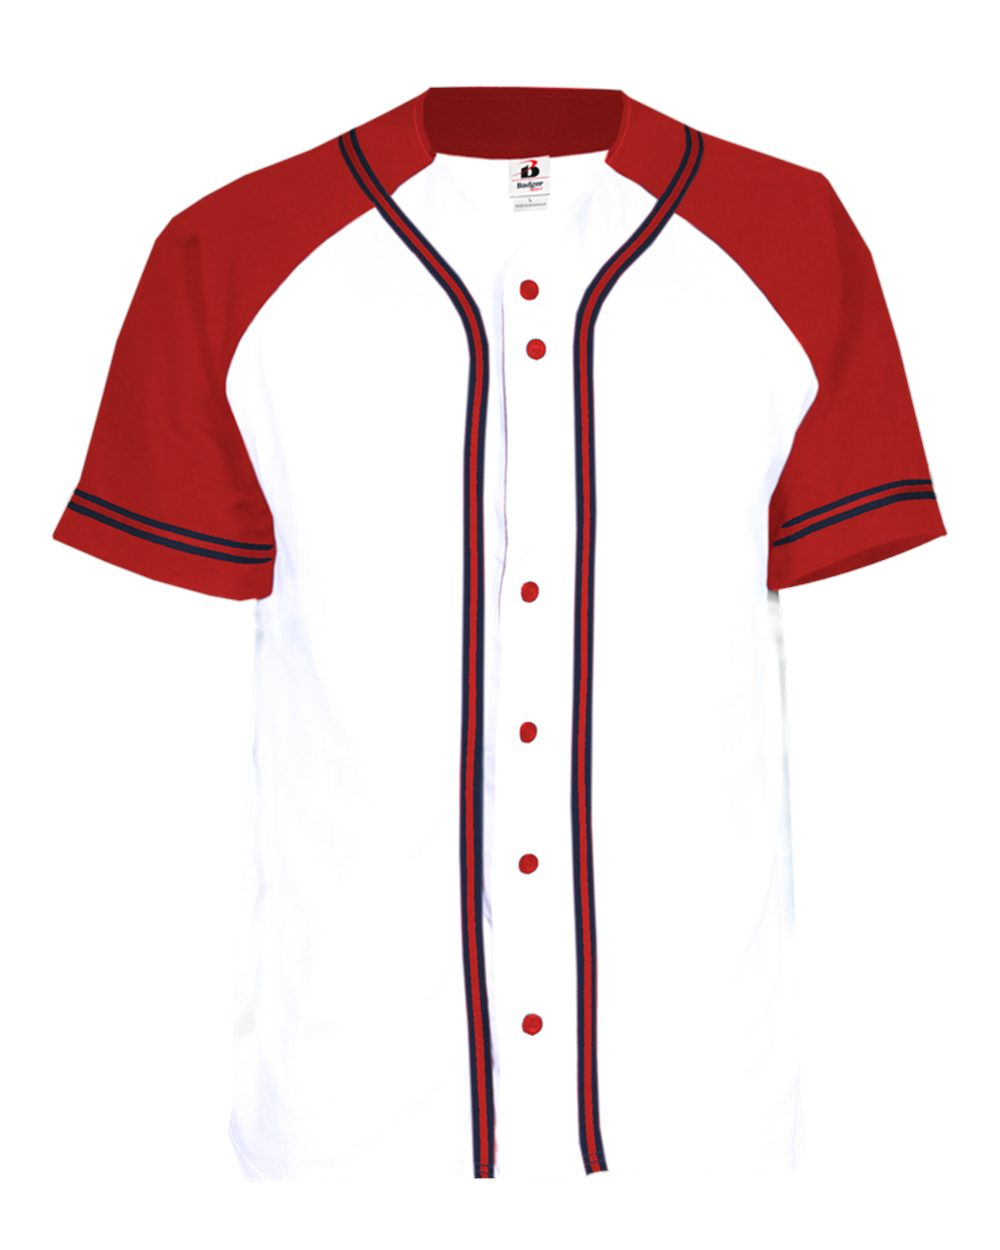 Baseball jersey clipart red banner freeuse library 99+ Baseball Jersey Clipart | ClipartLook banner freeuse library